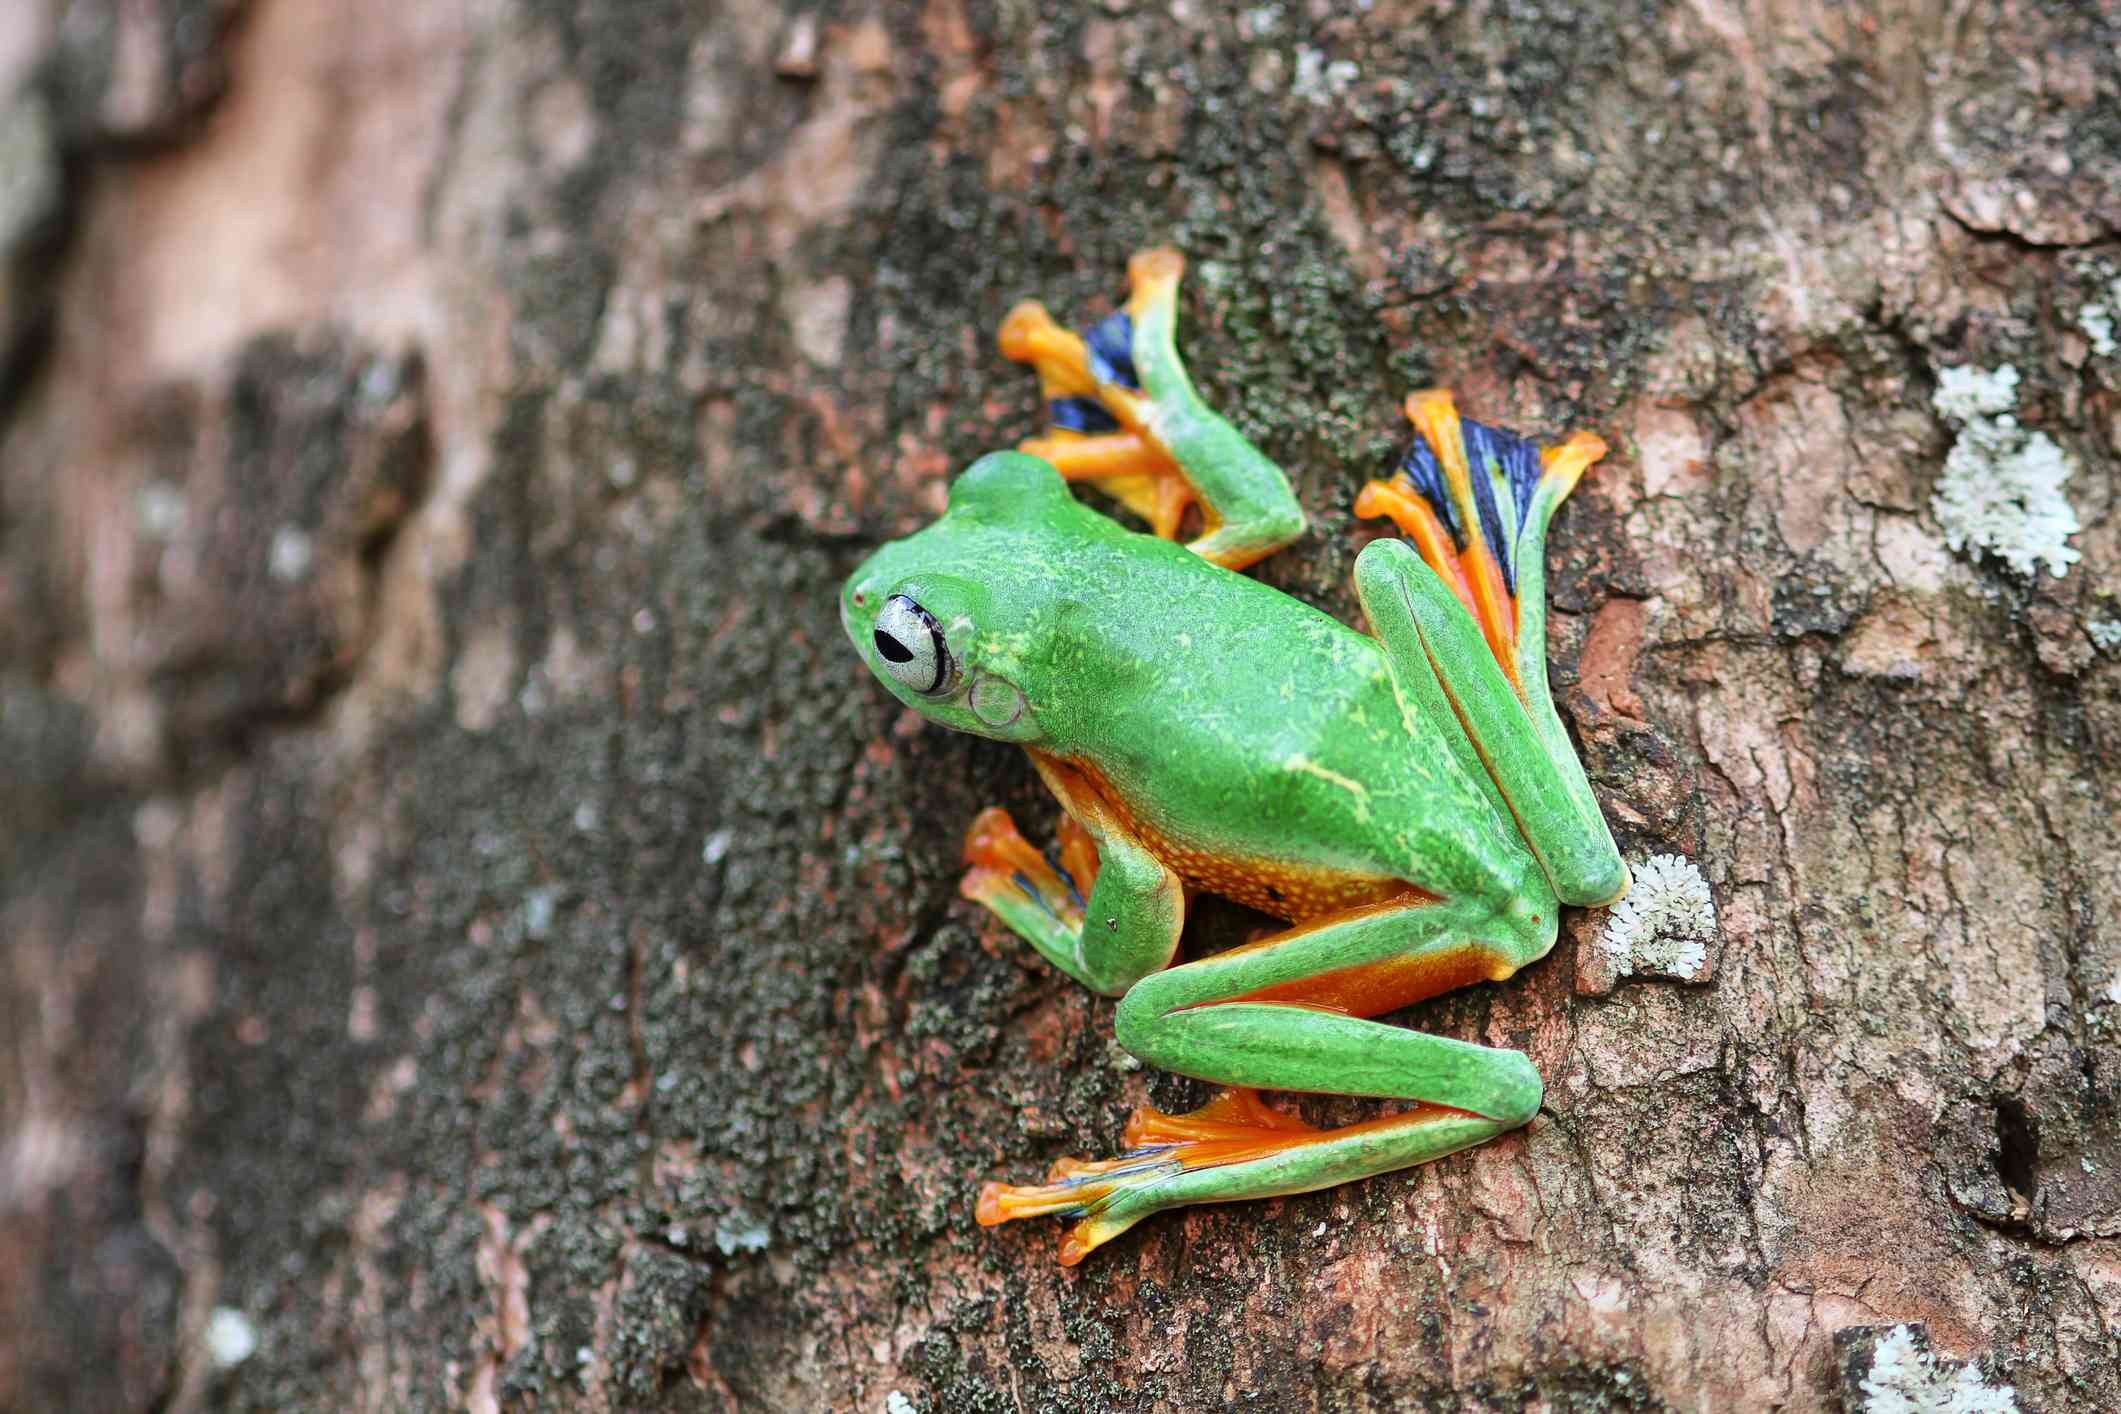 A green Wallace's flying frog with purple and orange feet on the side of a tree trunk